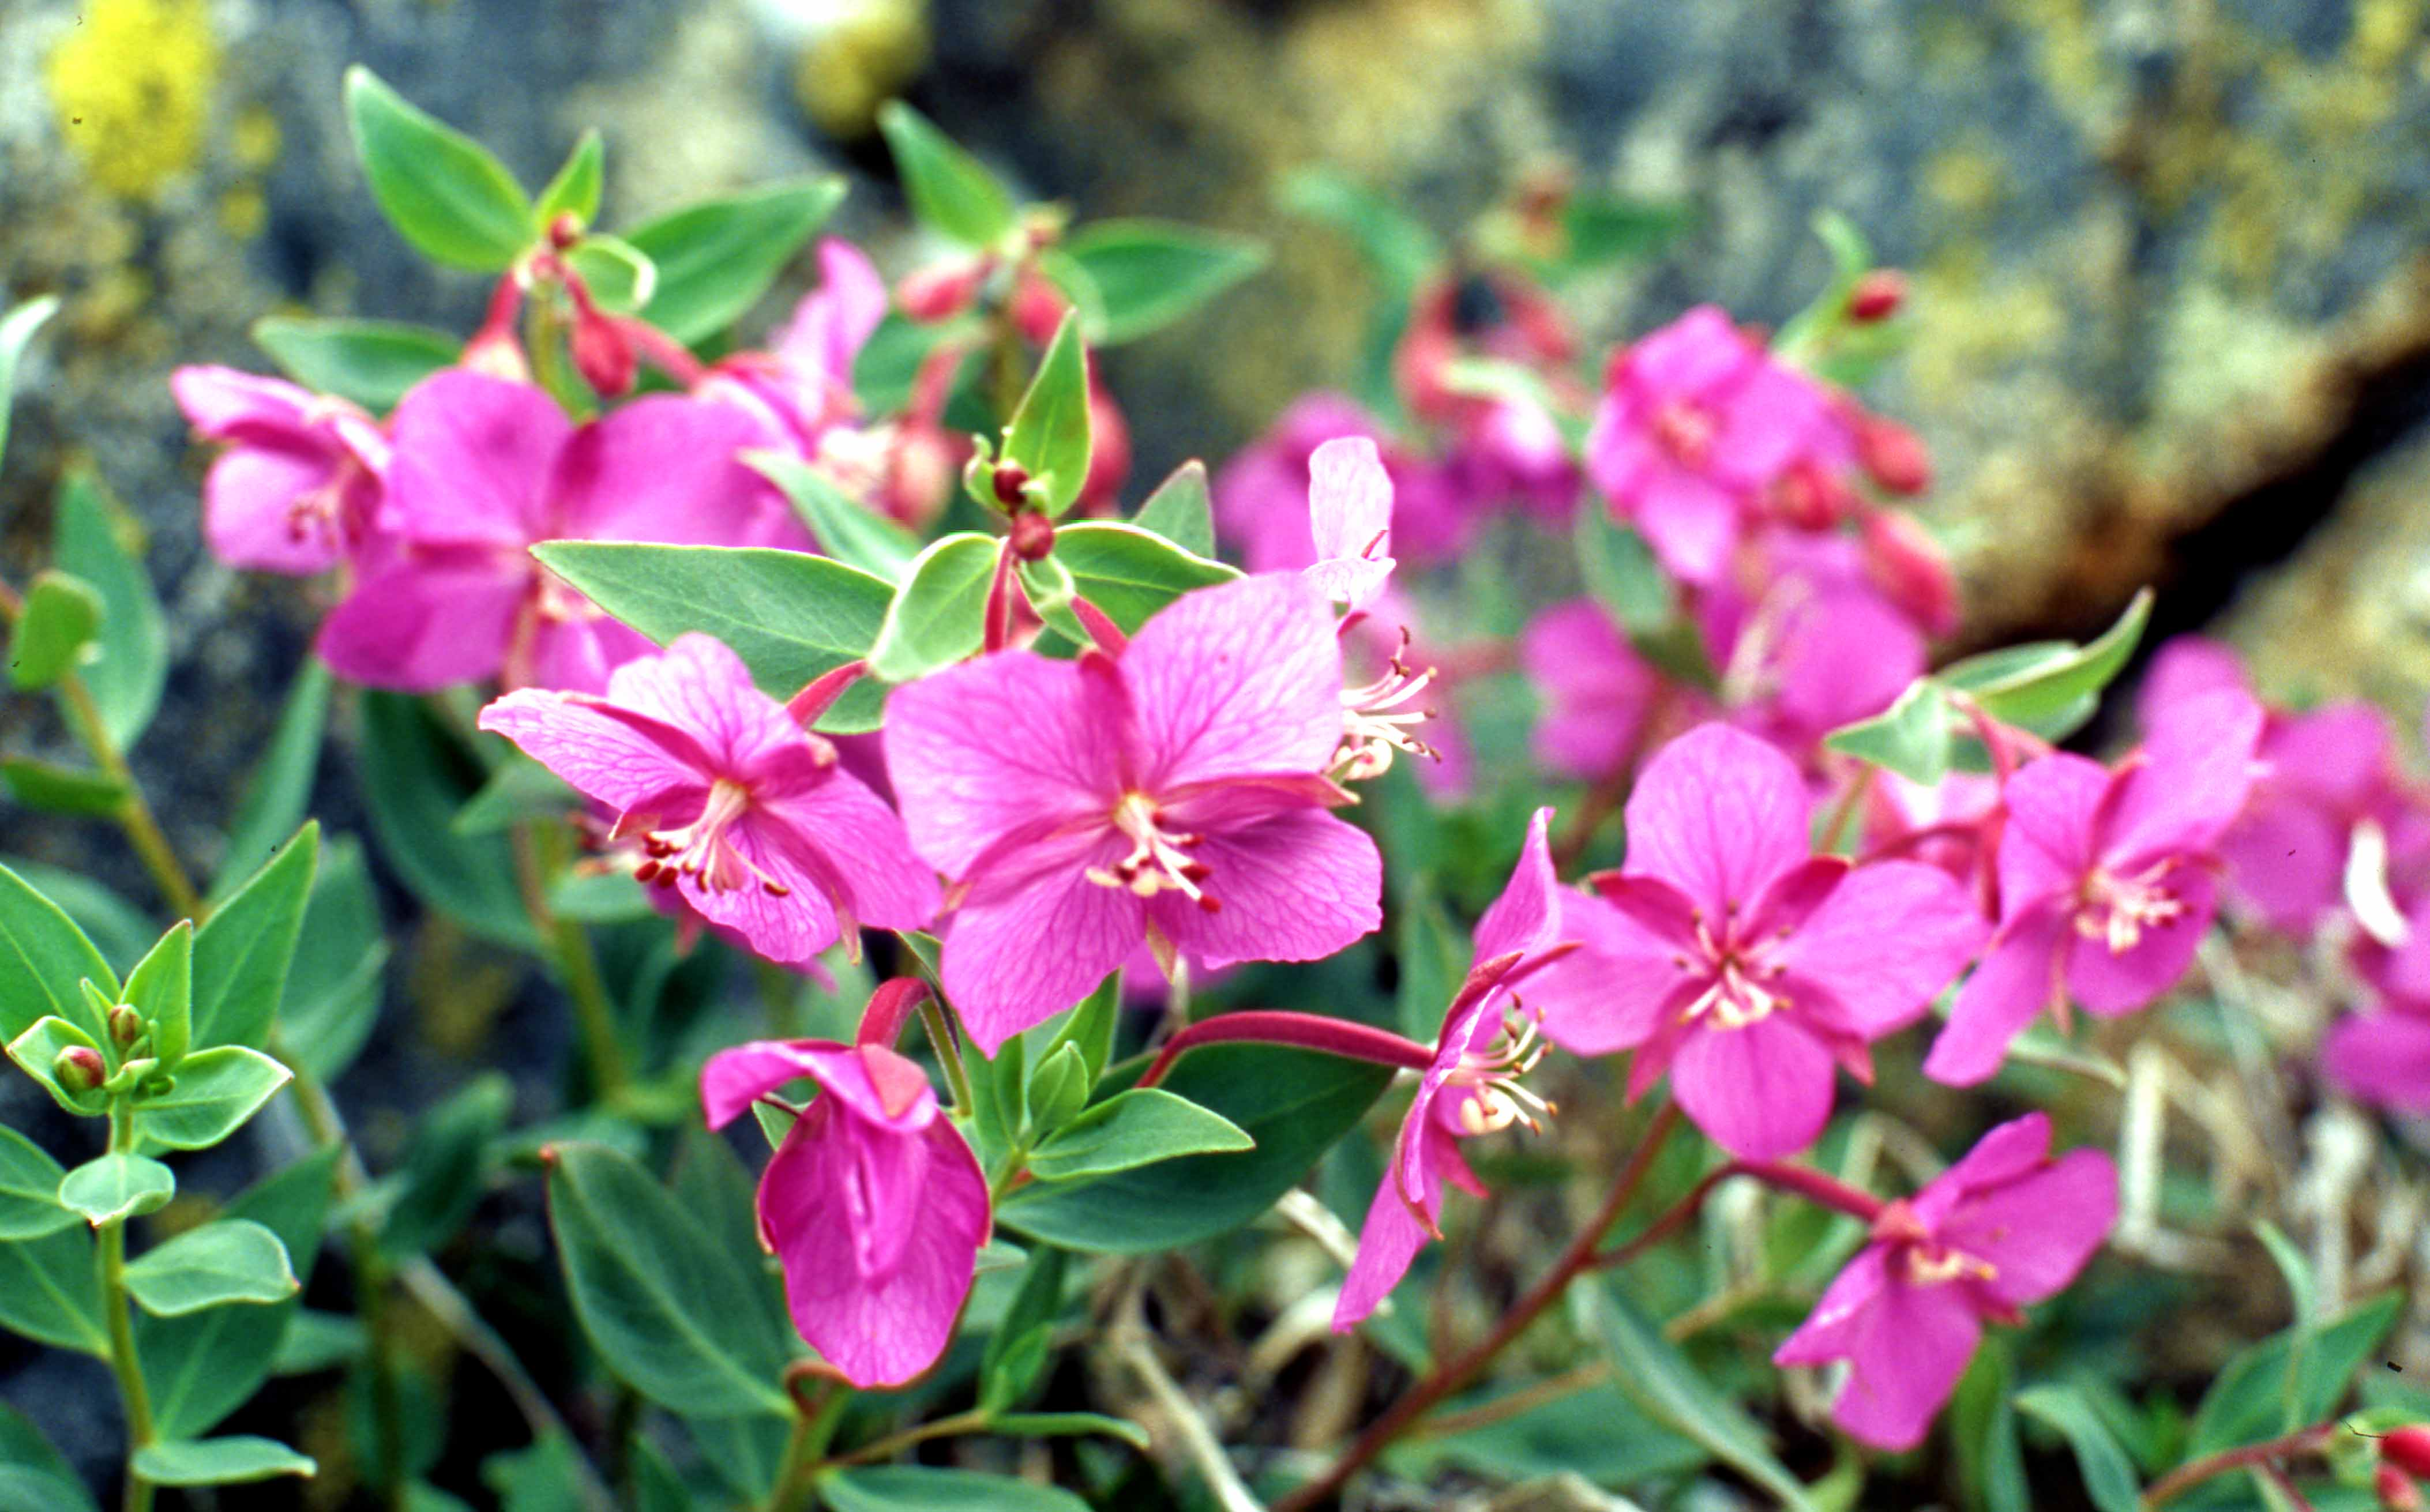 The national flower of Greenland: Dwarf fireweed (Chamerion